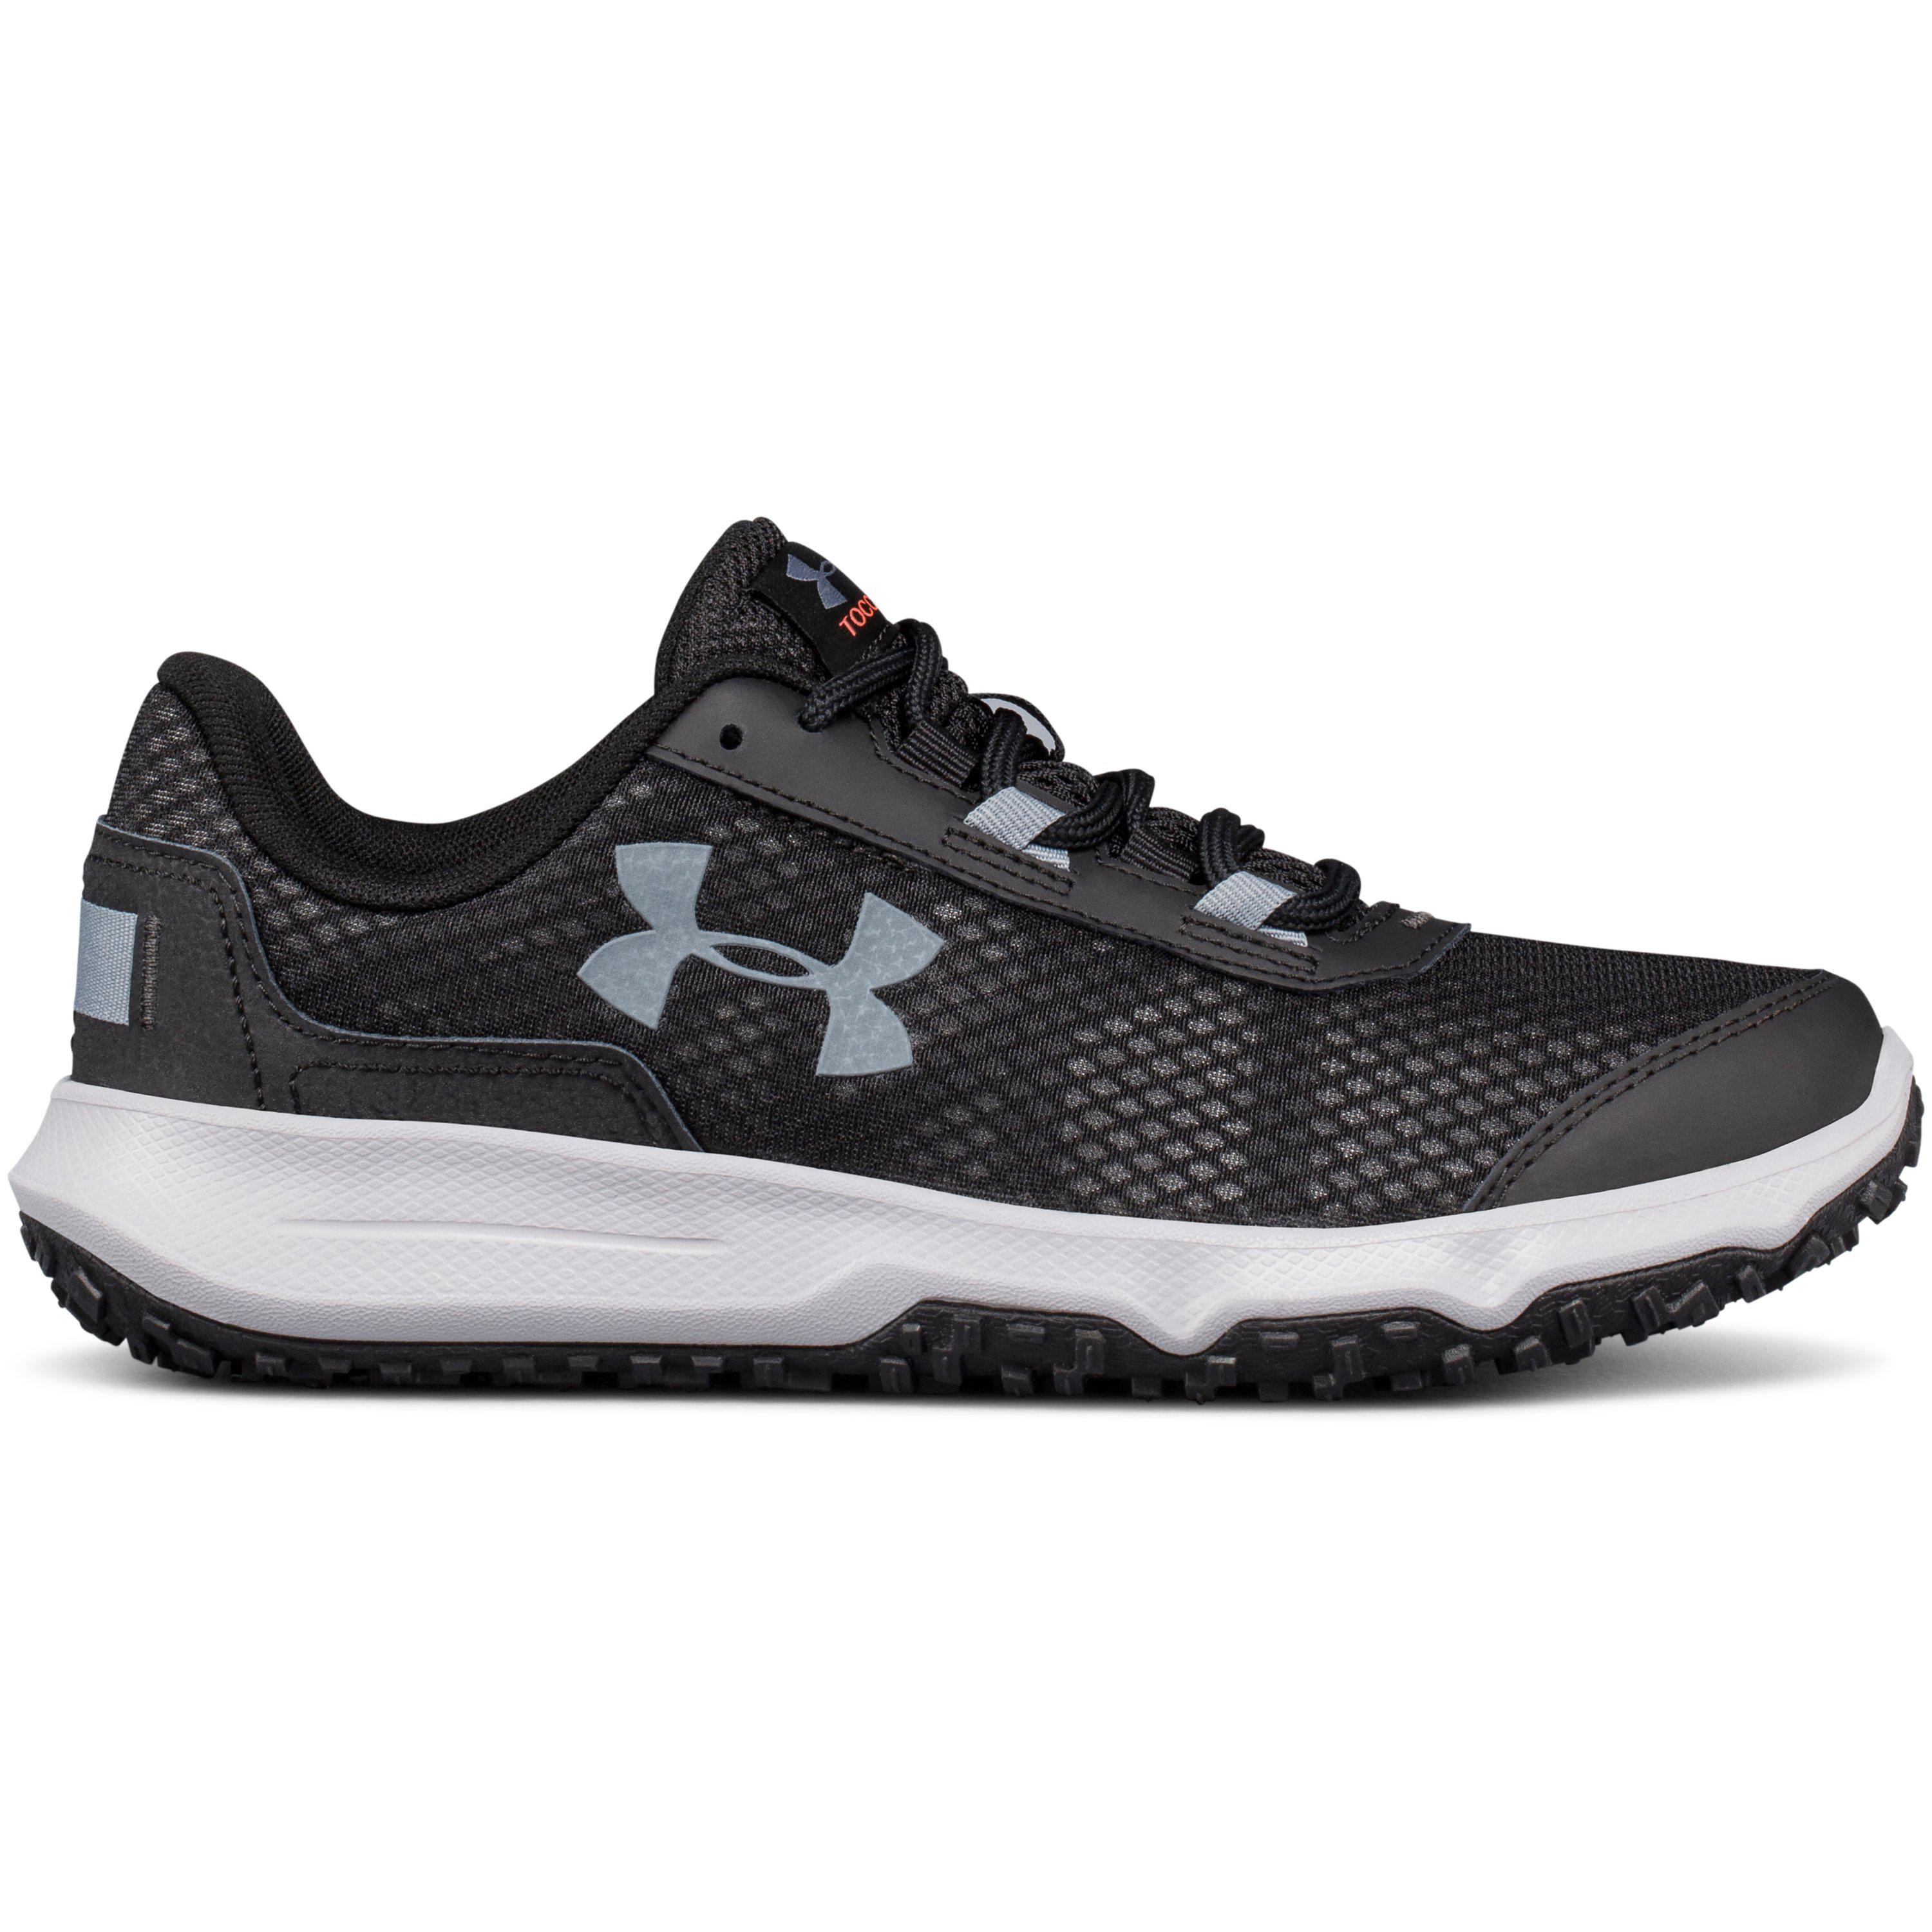 512c632447 Under Armour Black Women's Ua Toccoa Running Shoes